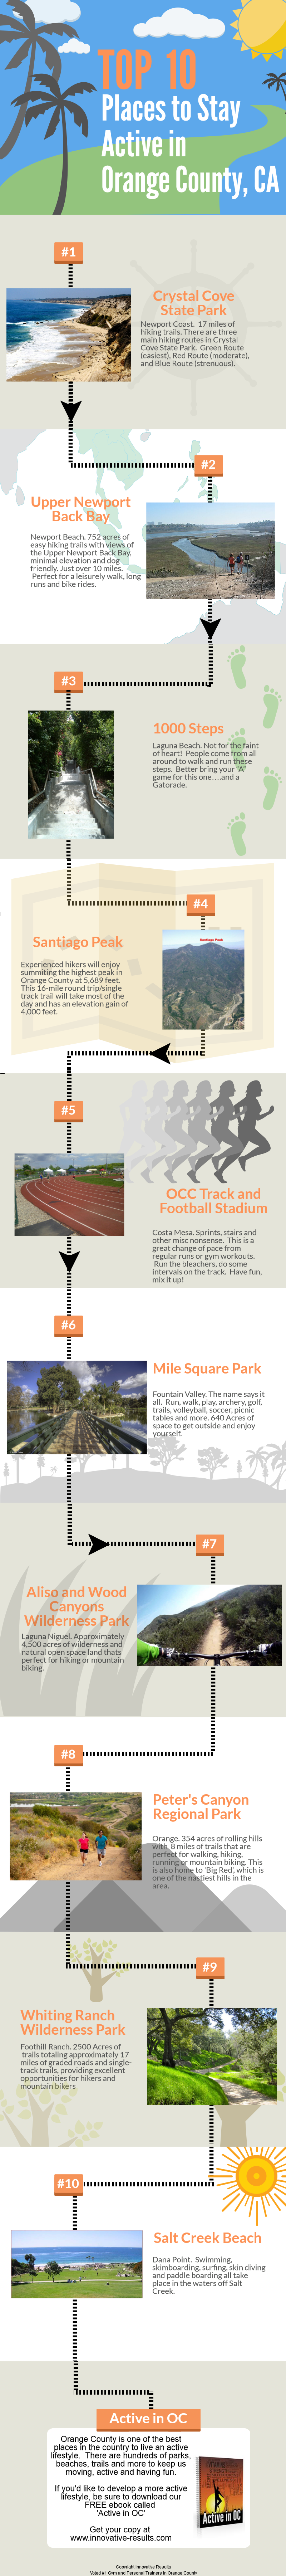 active in oc infographic